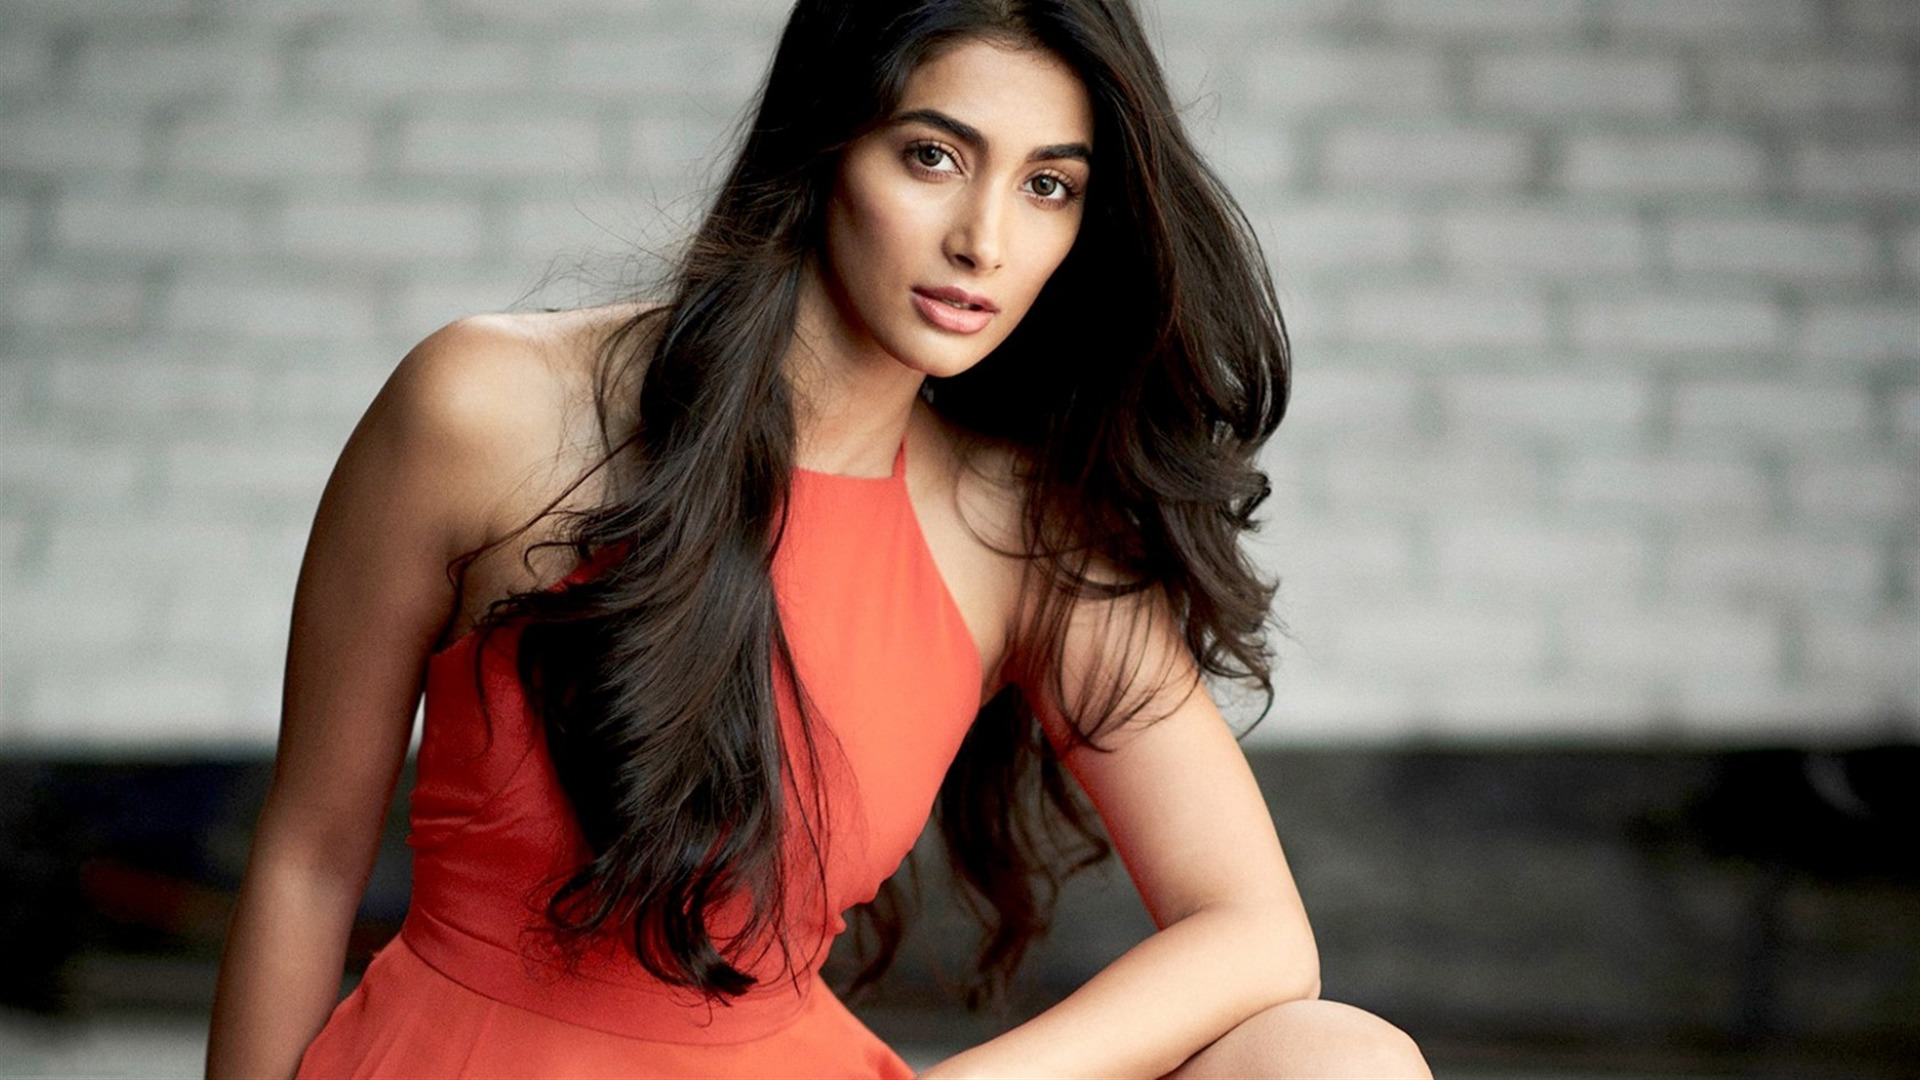 Indian Actresses images Pooja Hegde HD wallpaper and background